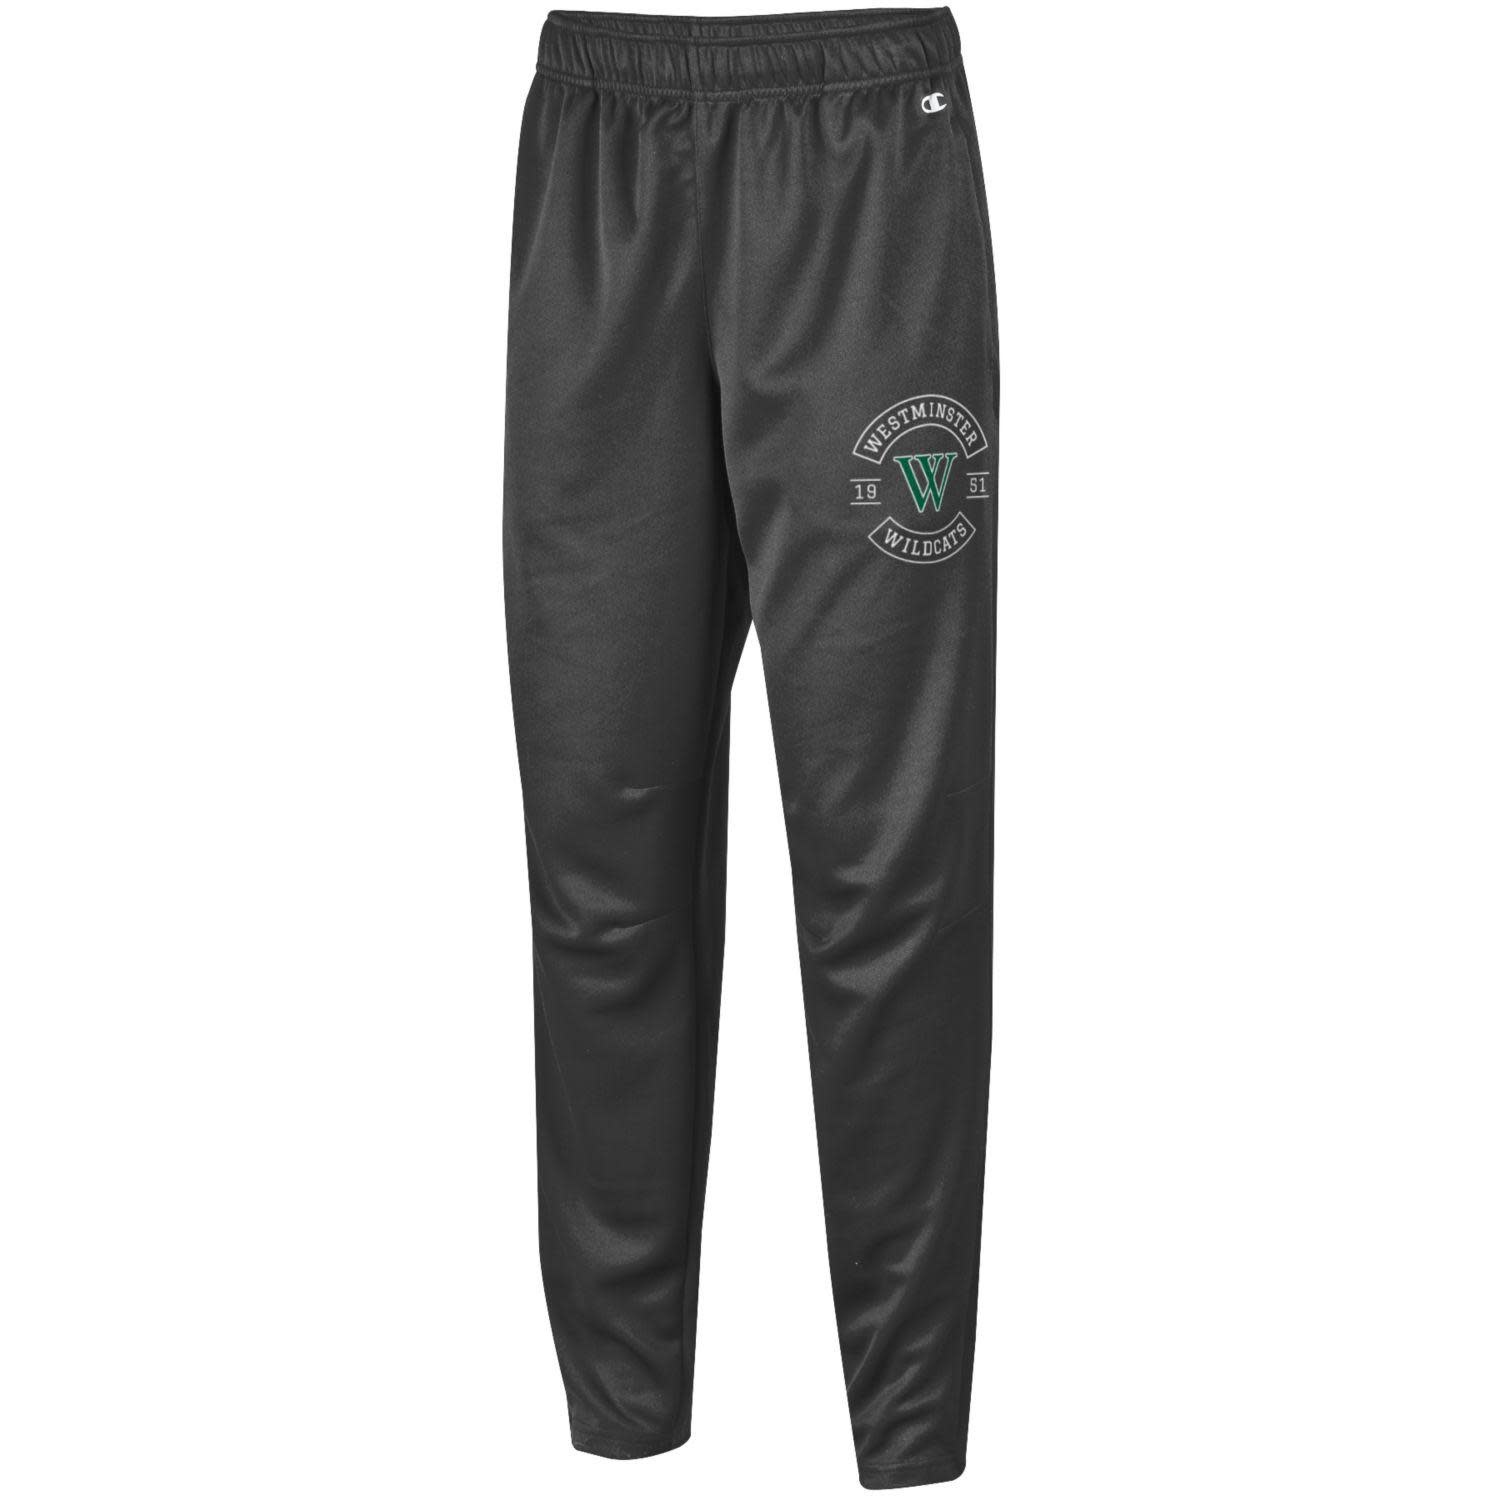 Champion Sweatpants: Champion Charcoal Heather/WM Wildcats Arched around W and 1951